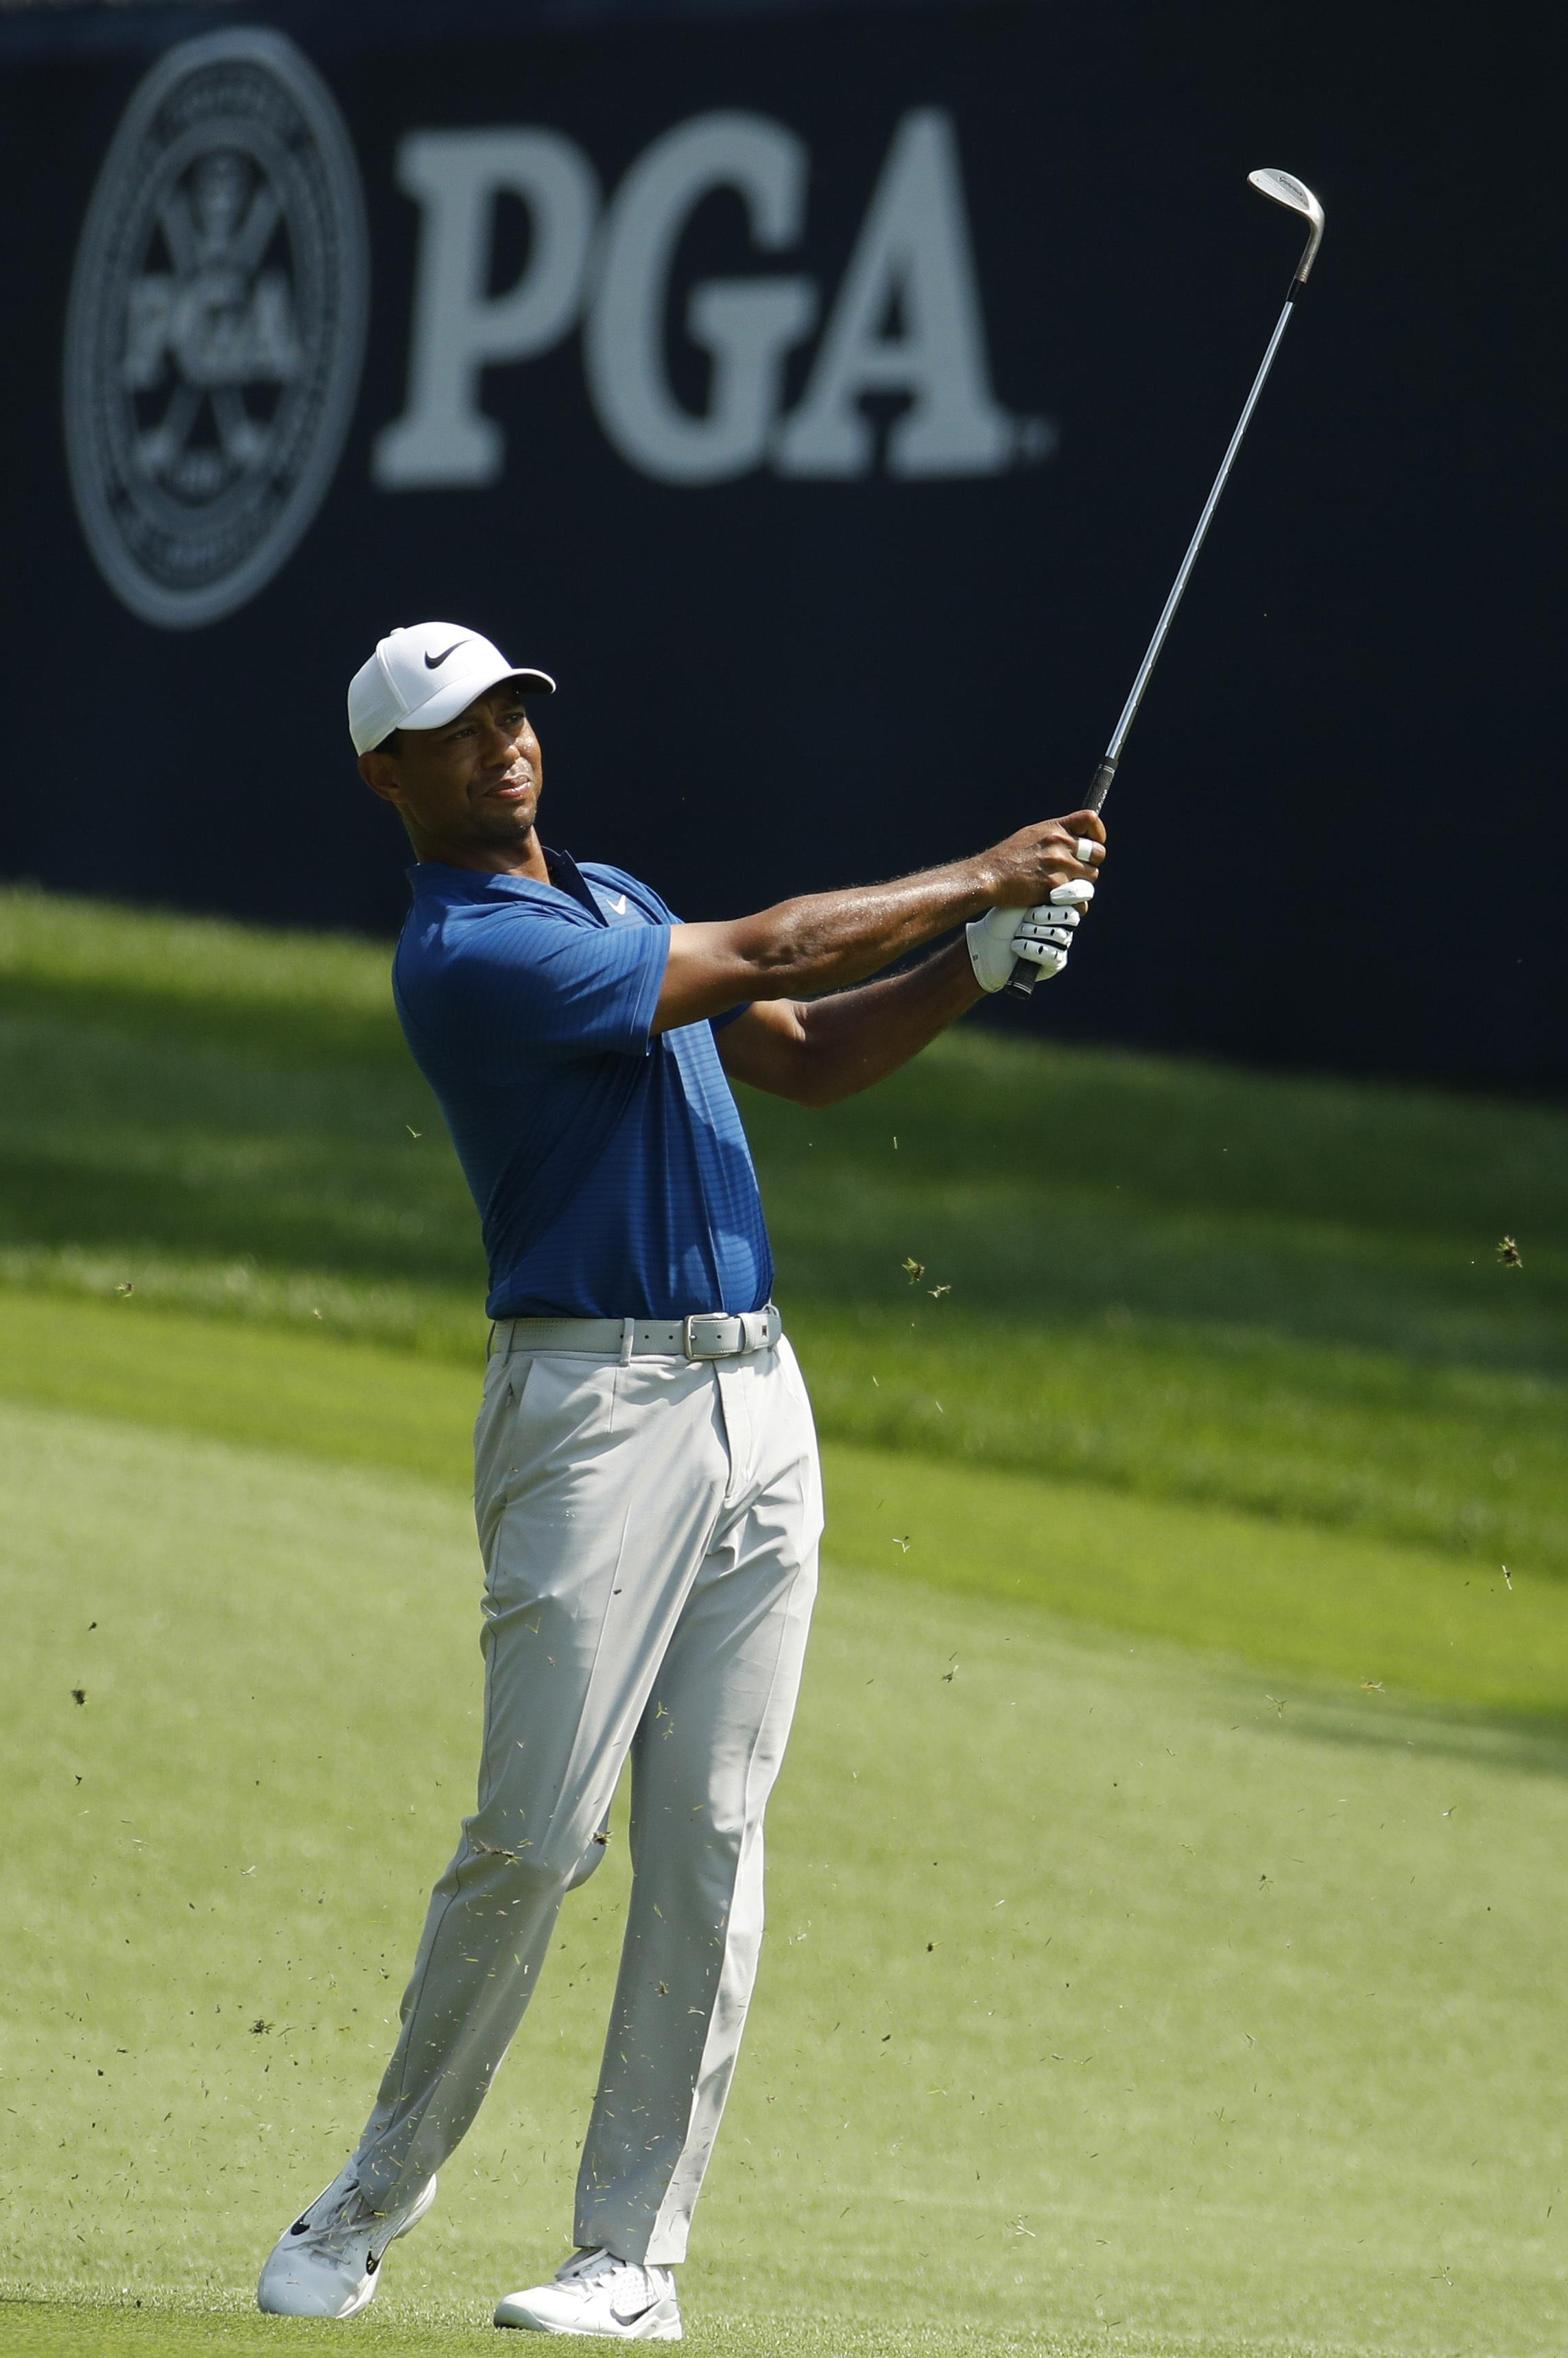 The 14-time Major champion boosted his hopes of grabbing number 15